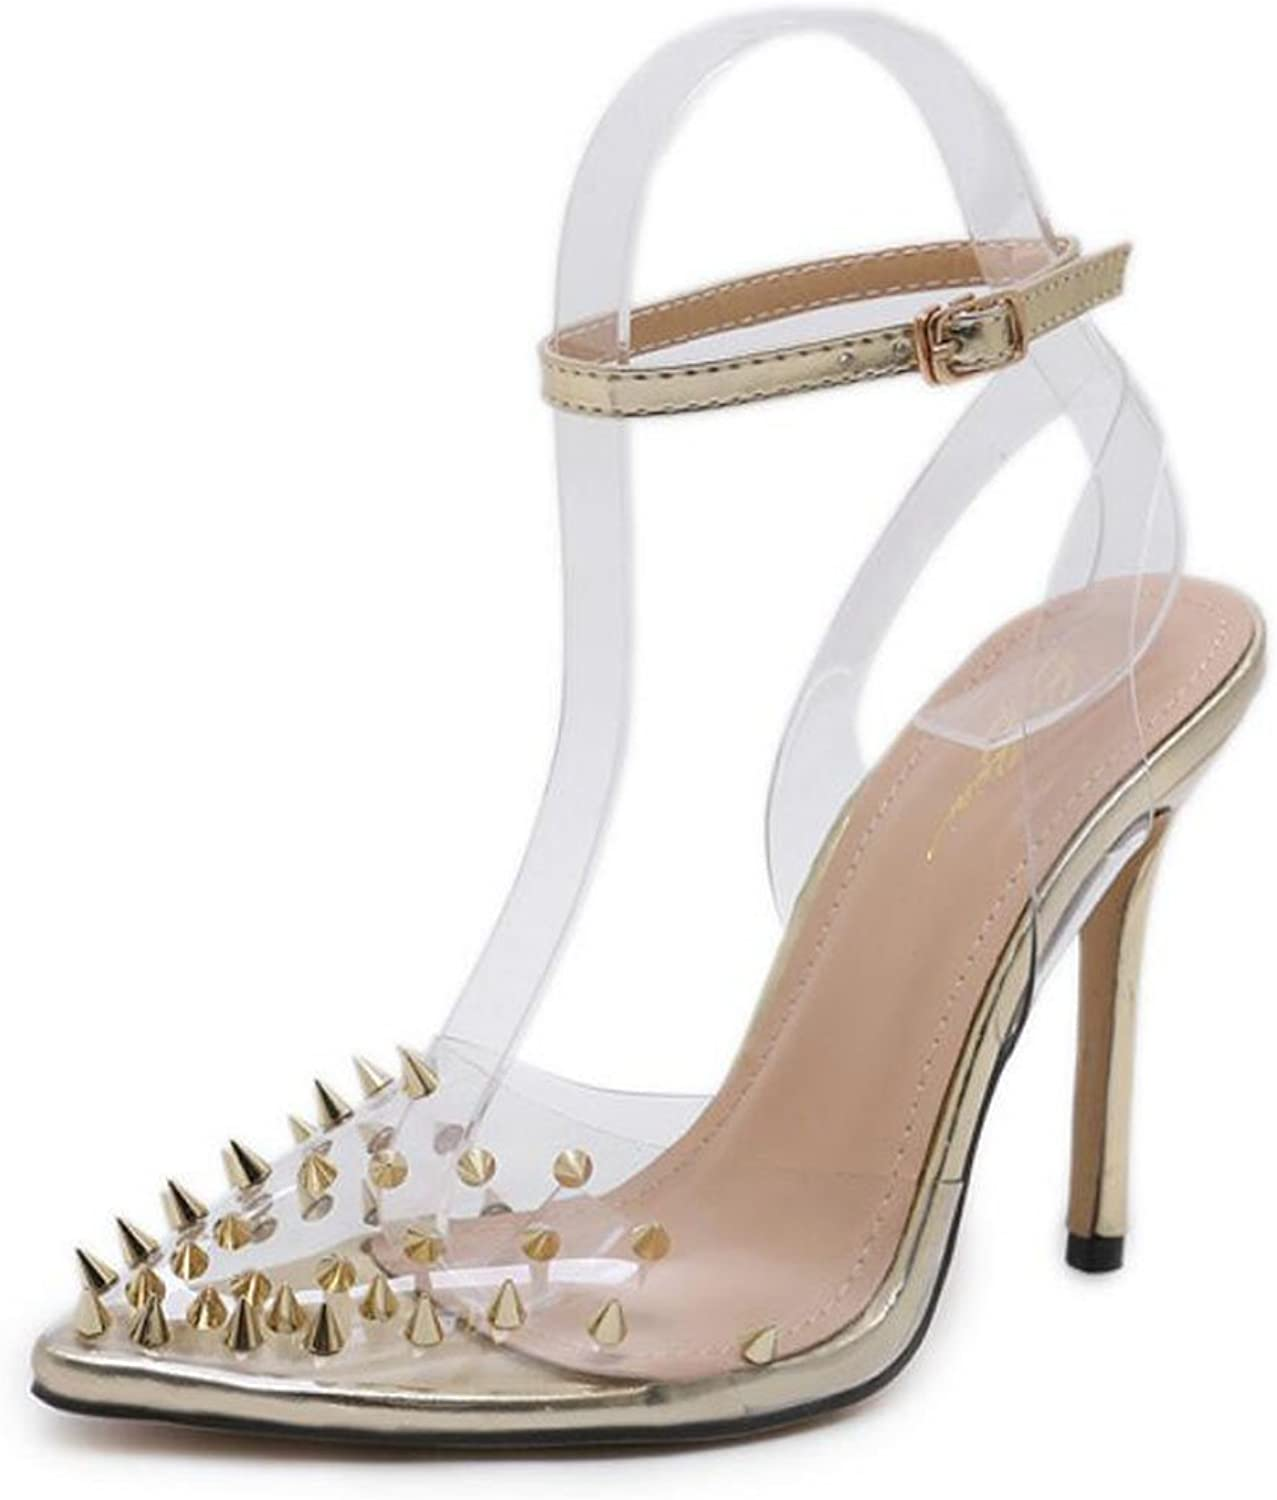 LZWSMGS Women's Pointed High Heels Shallow shoes Rivets Transparent High Heel Sandals Fashion Casual shoes Palace shoes gold and Silver Party Ladies Sandals (color   gold, Size   40 EU)